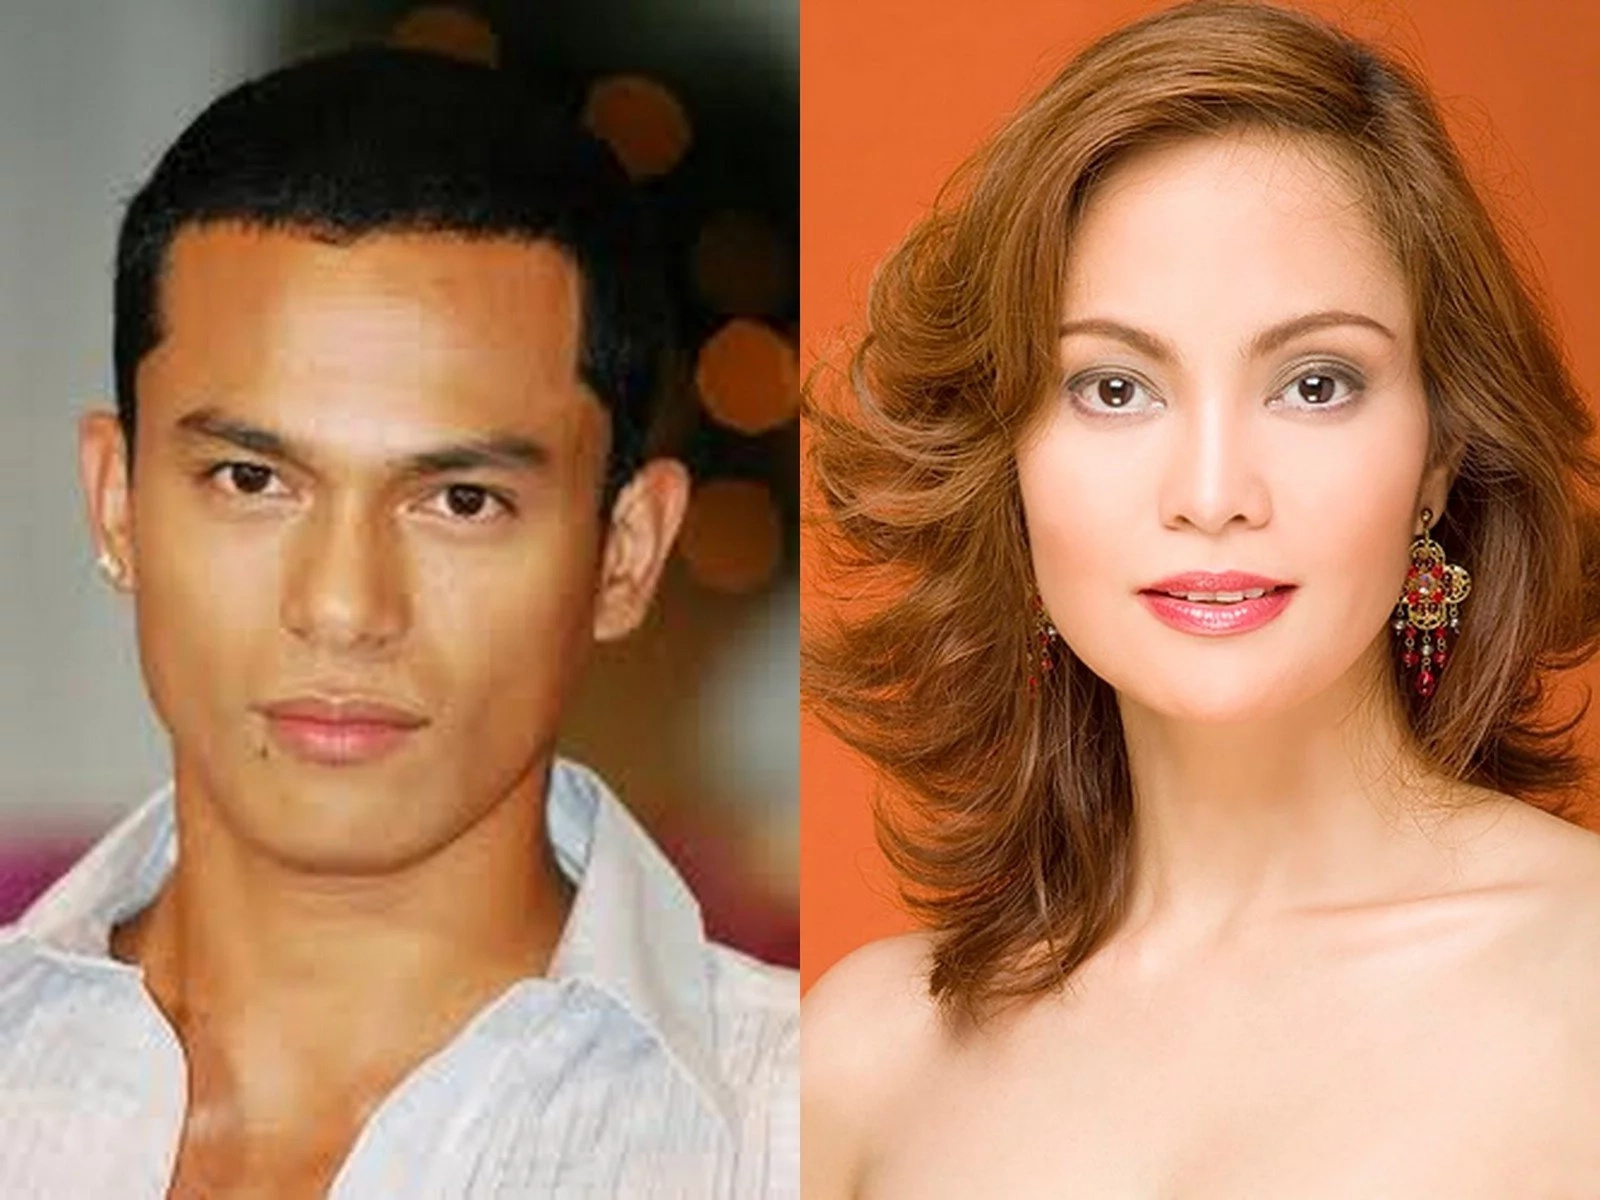 Eula Valdez in a relationship with Boyfriend for 9 years